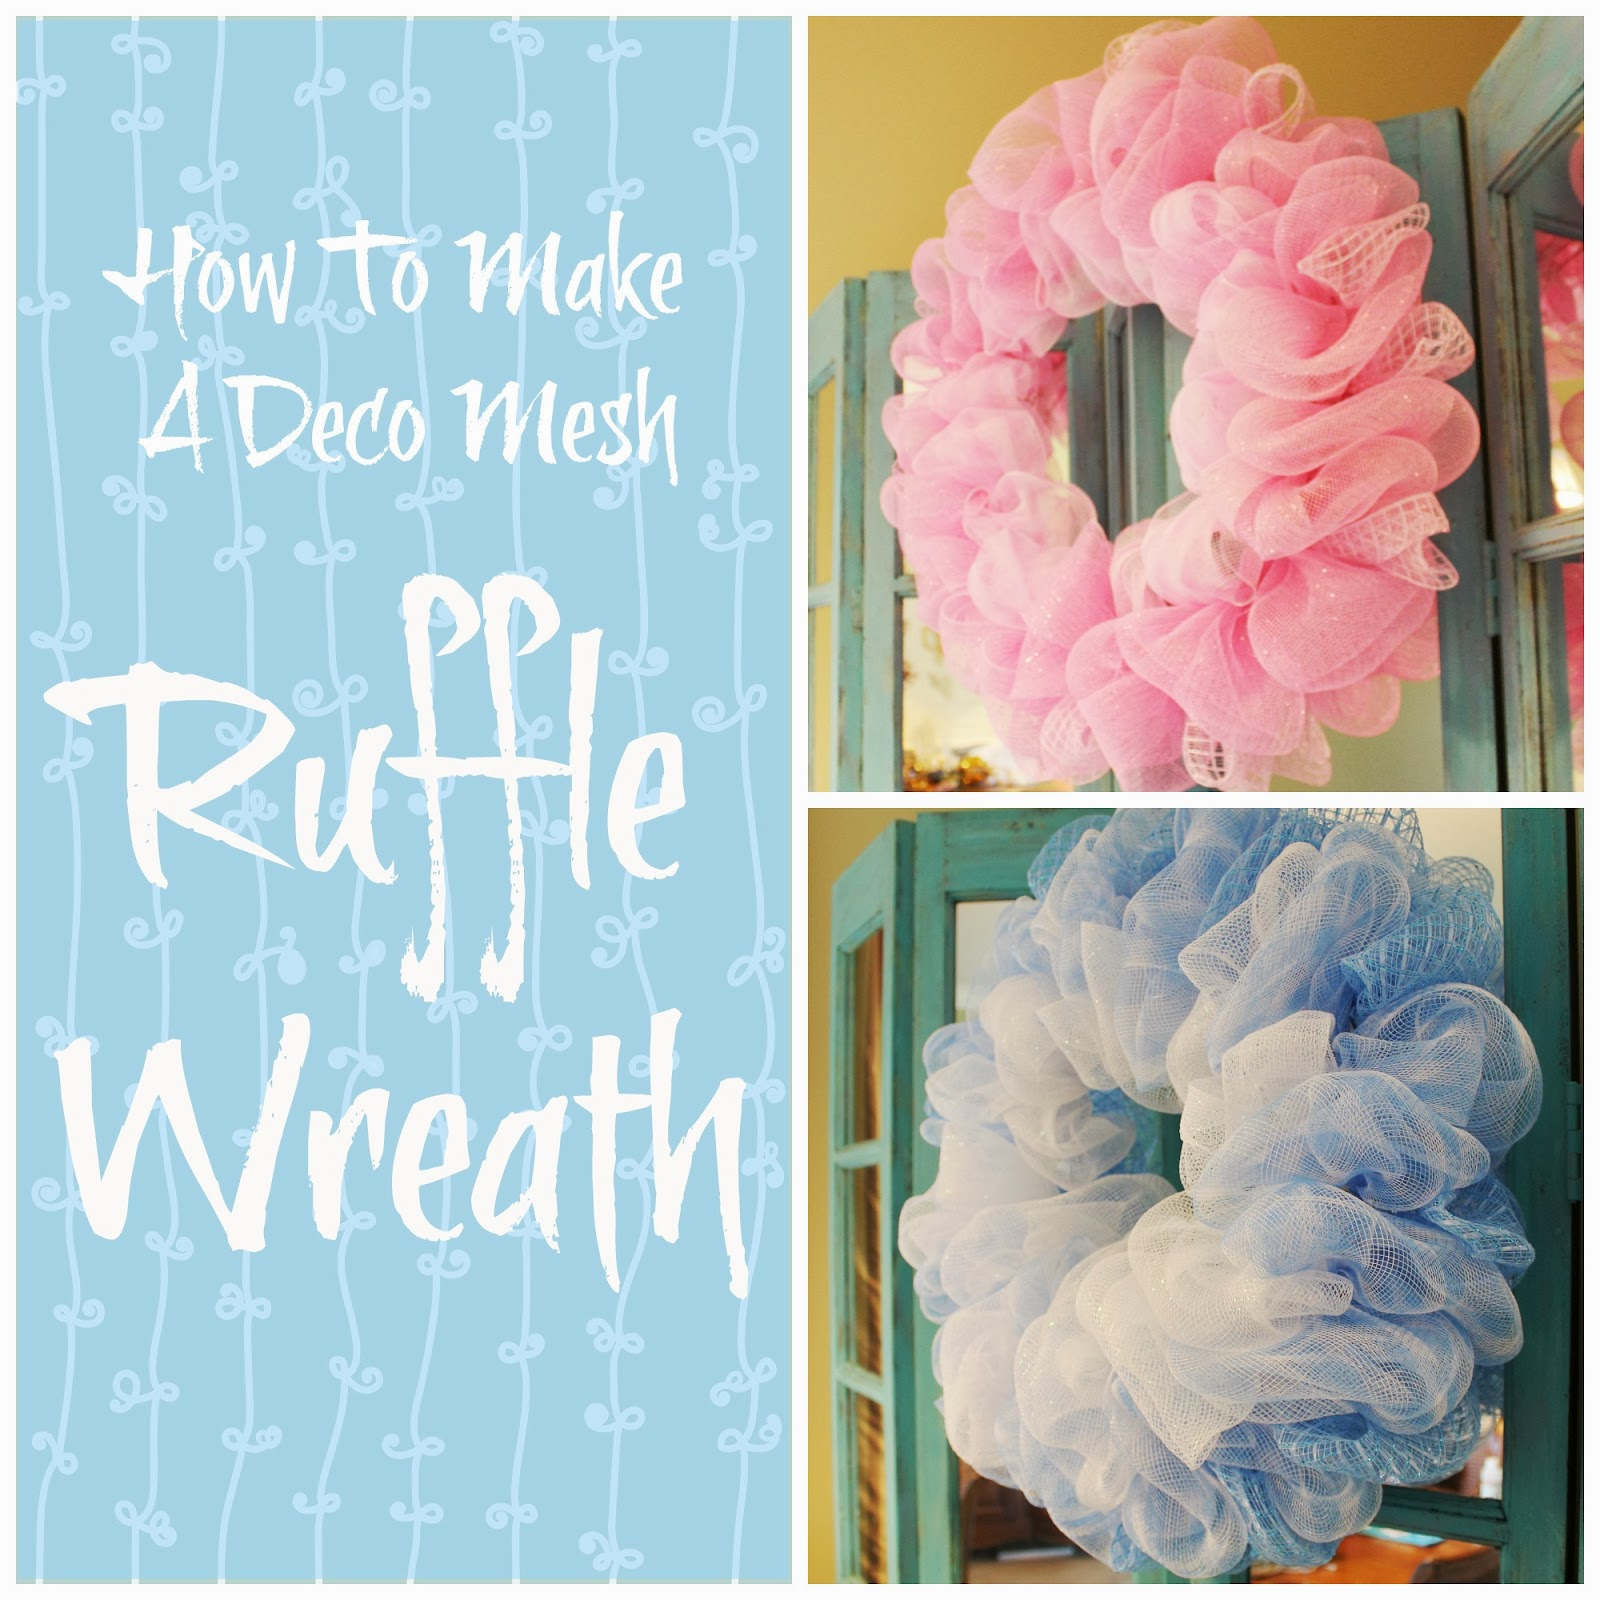 How to make a deco mesh ruffle wreath miss kopy kat how to make a deco mesh ruffle wreath jeuxipadfo Image collections